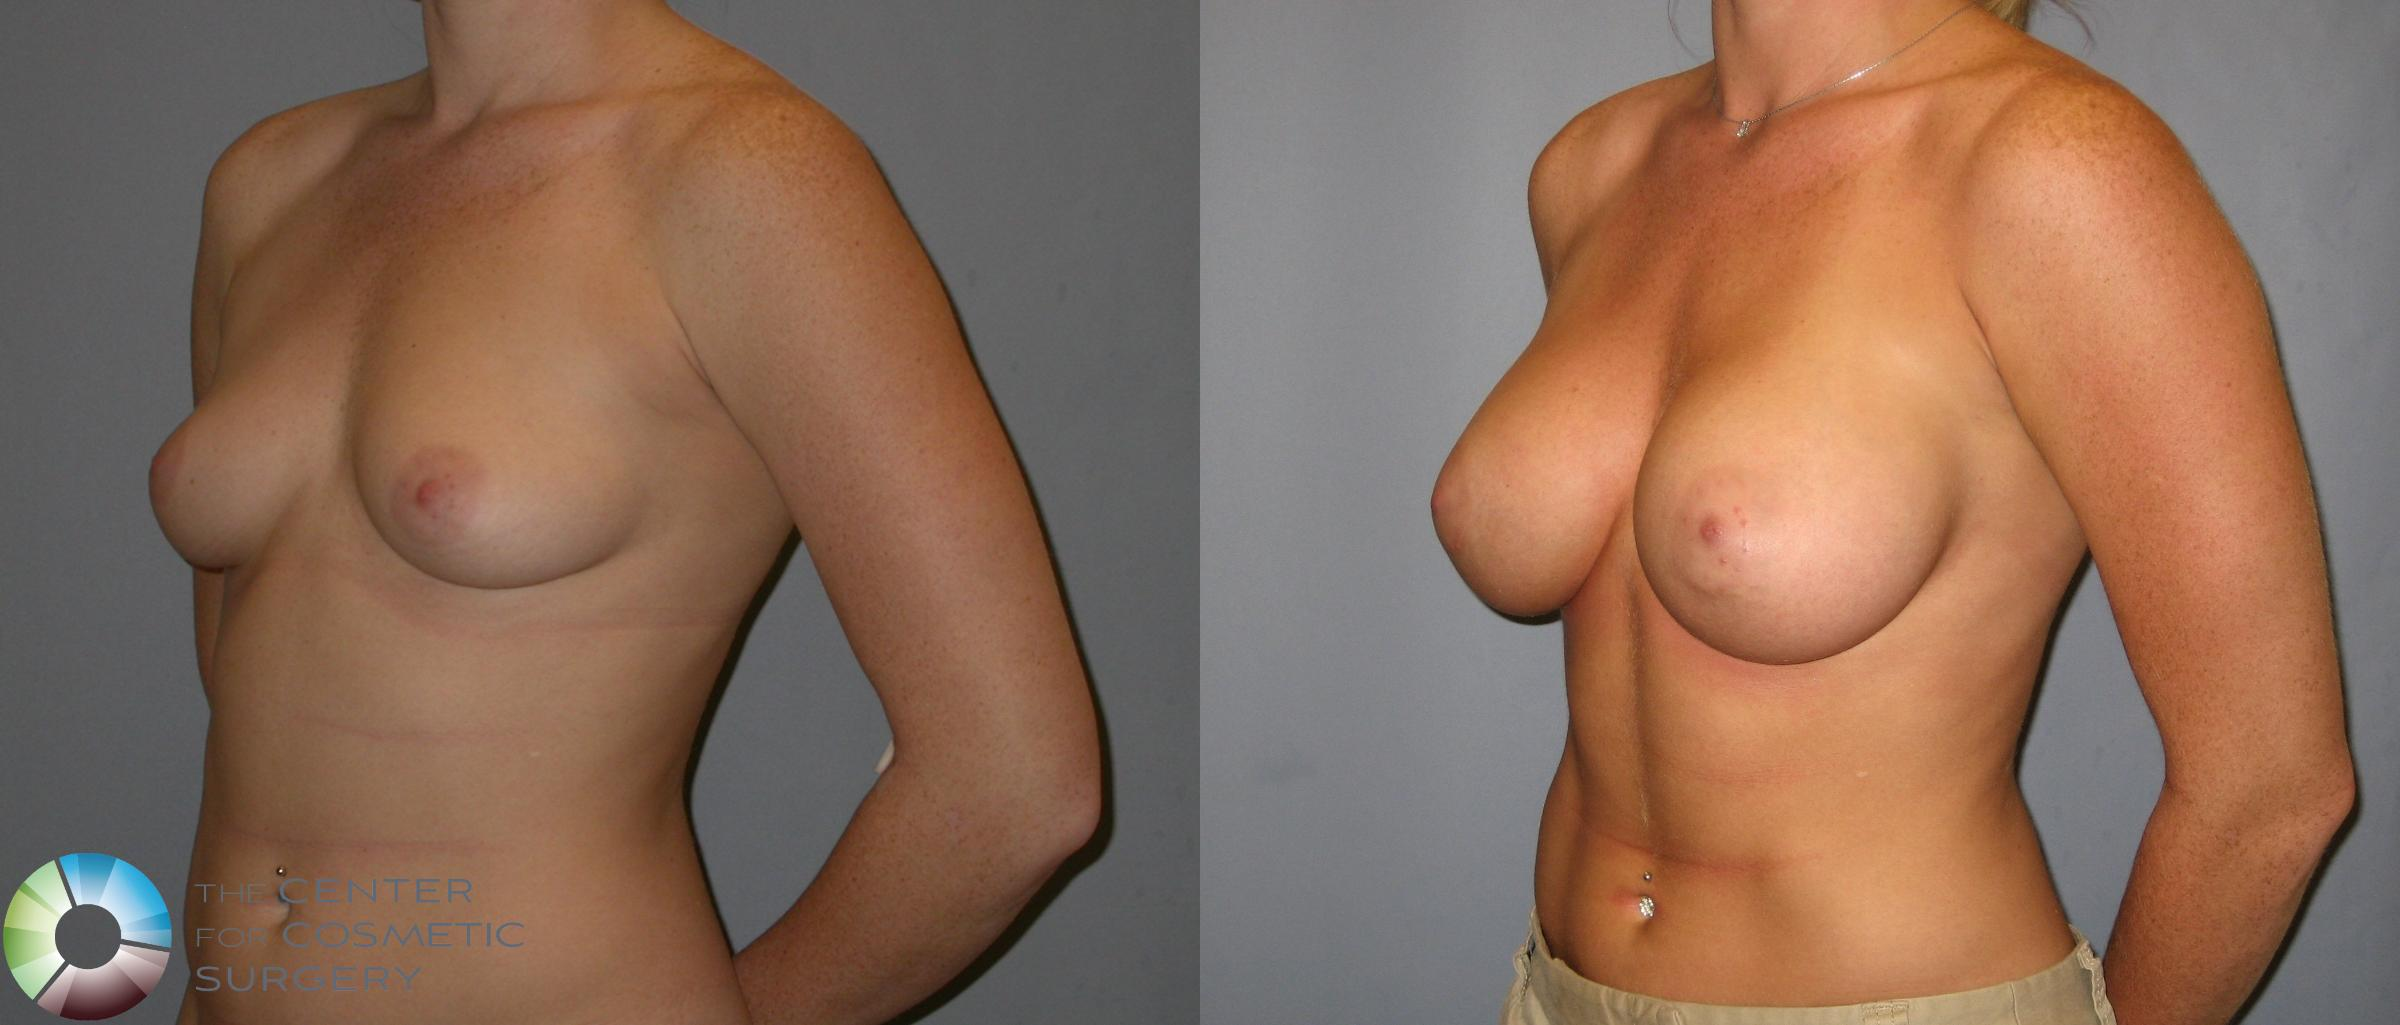 Breast Augmentation Case 143 Before & After View #1 | Golden, CO | The Center for Cosmetic Surgery